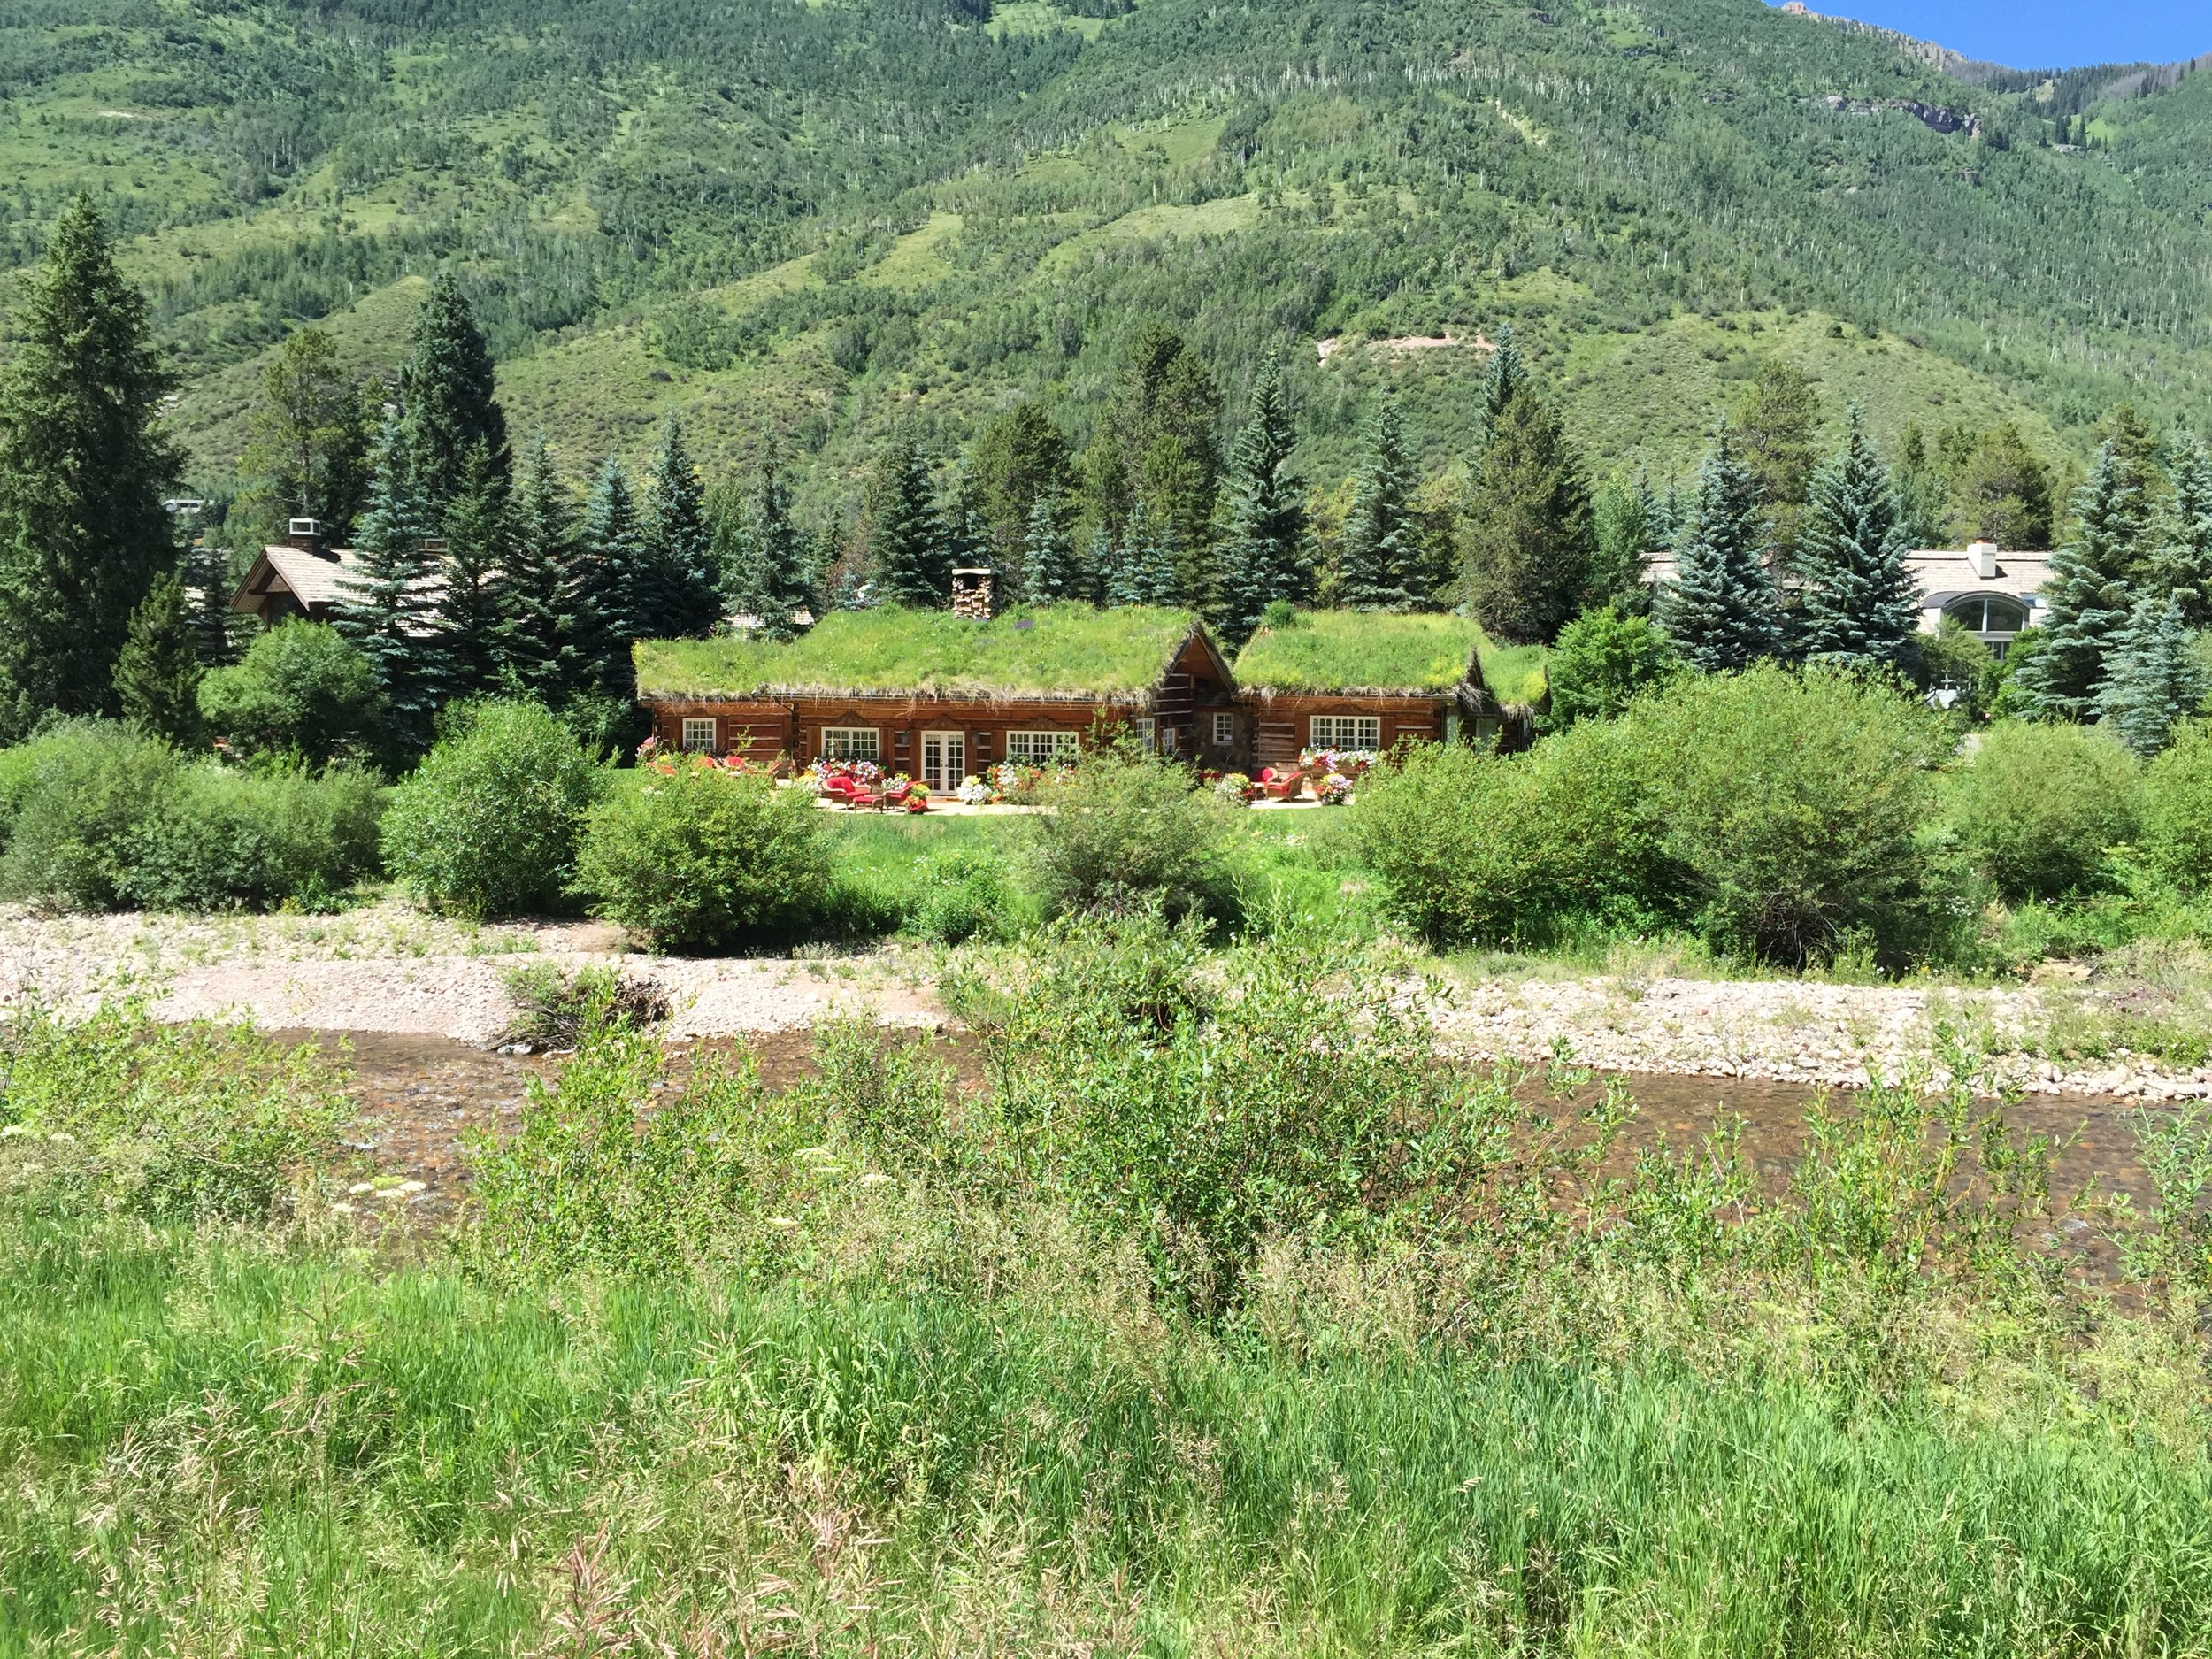 Vail-Colorado-Green-Roof-3.JPG